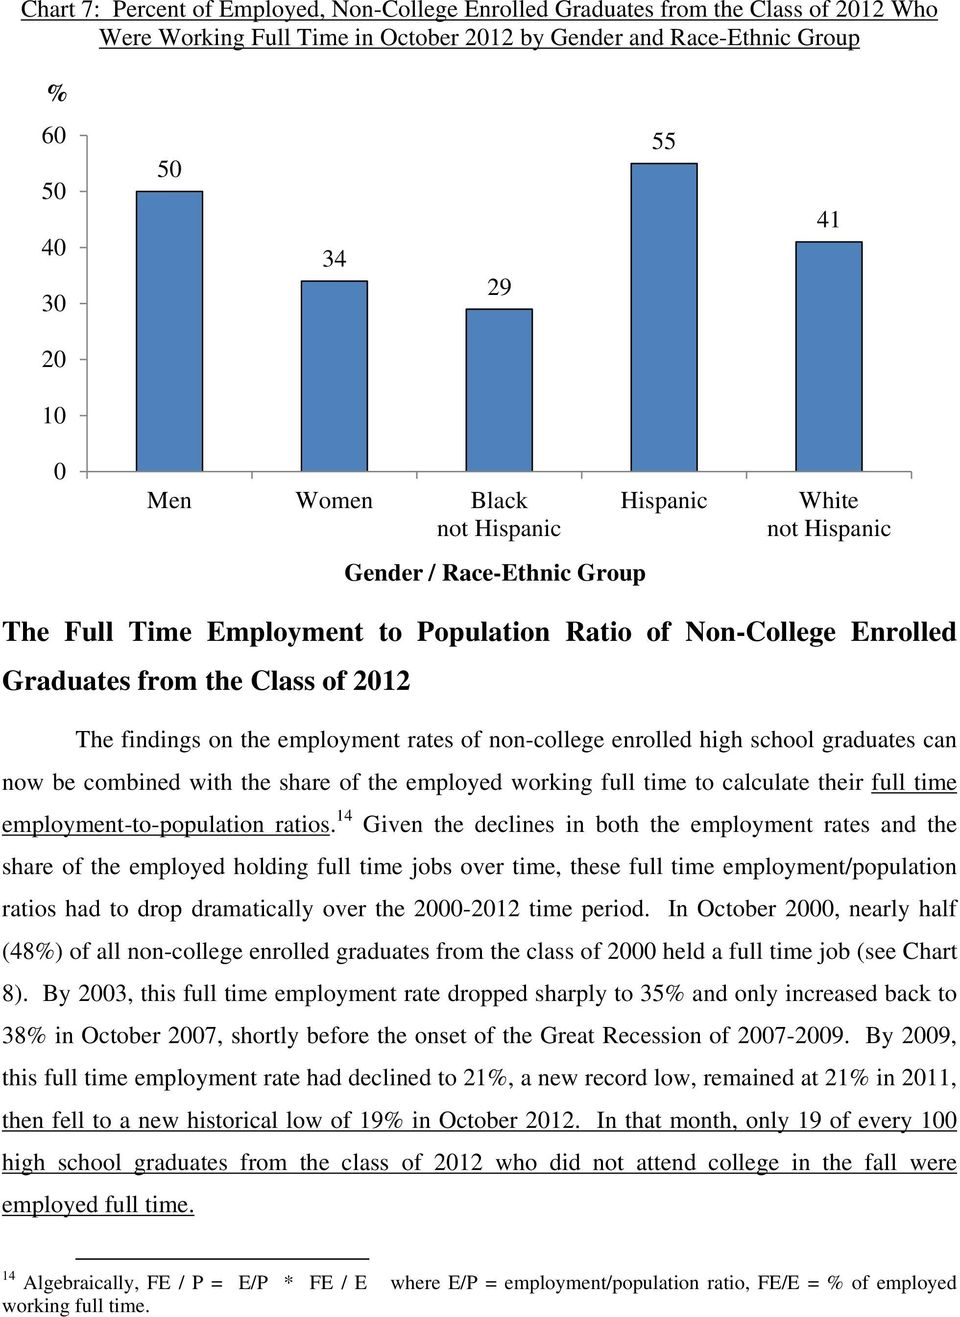 rates of non-college enrolled high school graduates can now be combined with the share of the employed working full time to calculate their full time employment-to-population ratios.